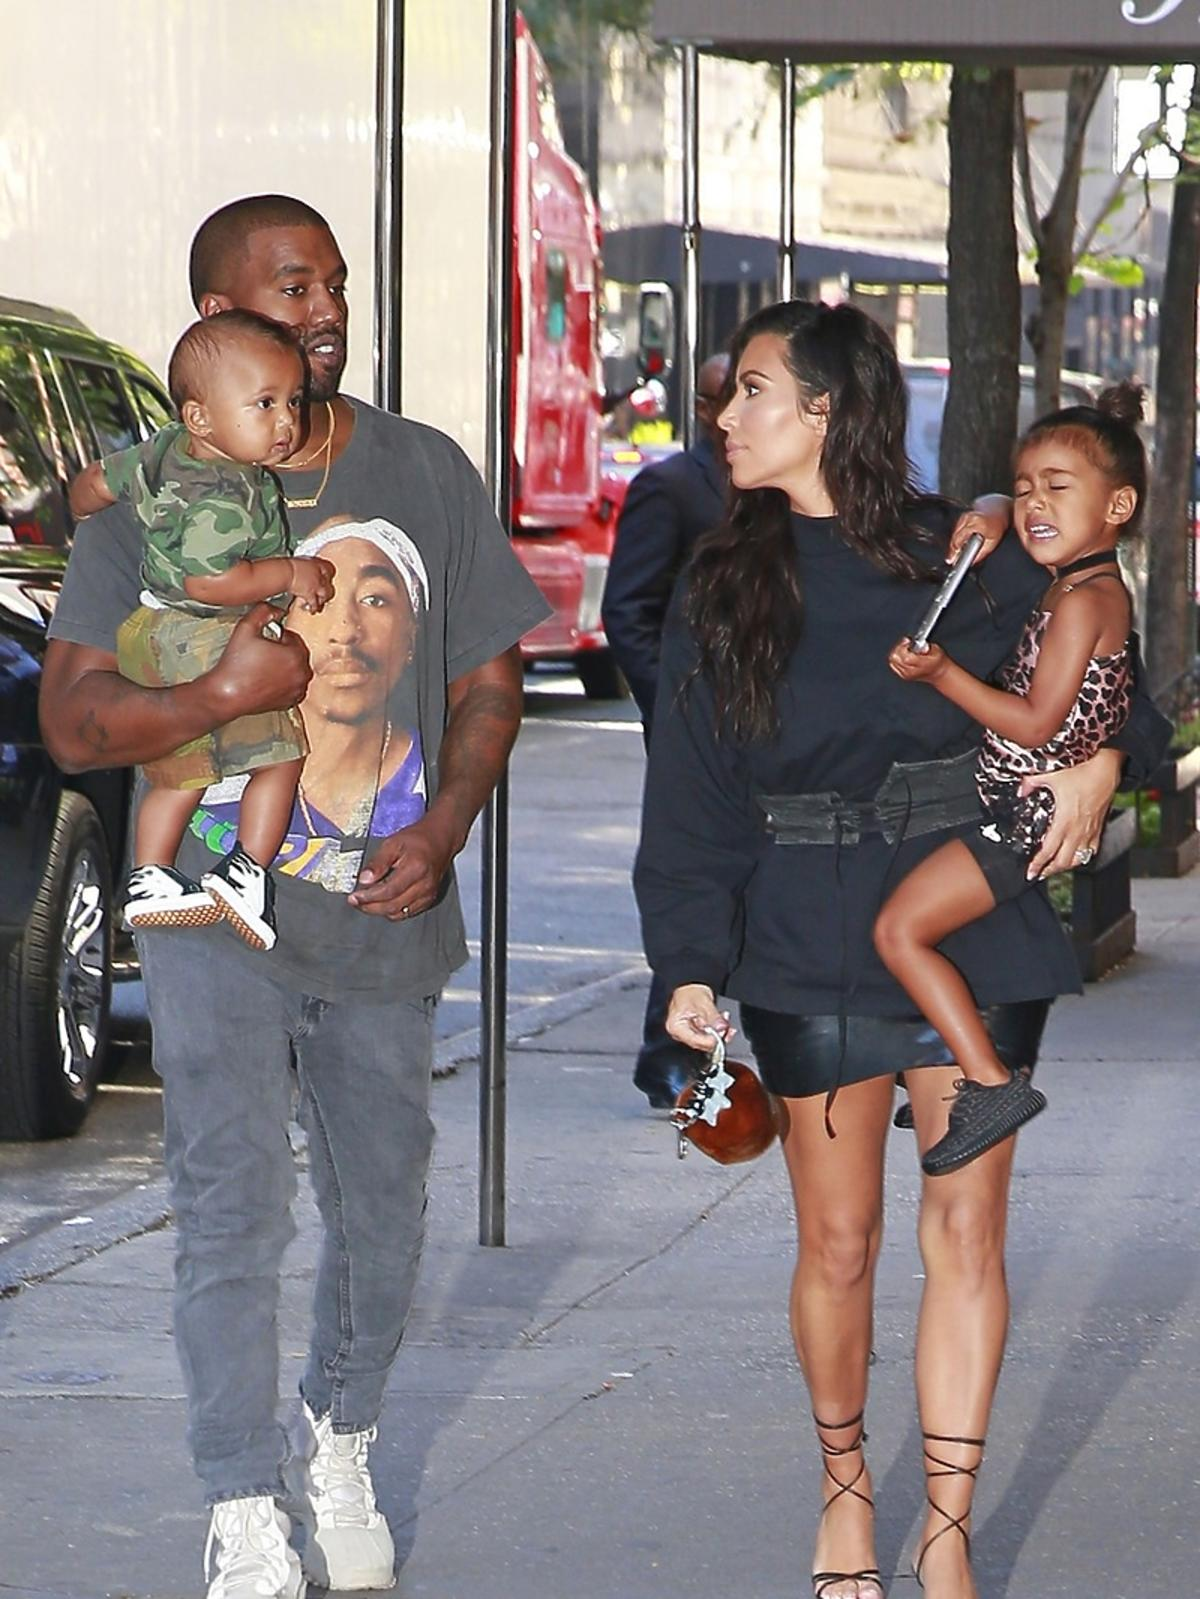 vvKanye West, Saint West, North West